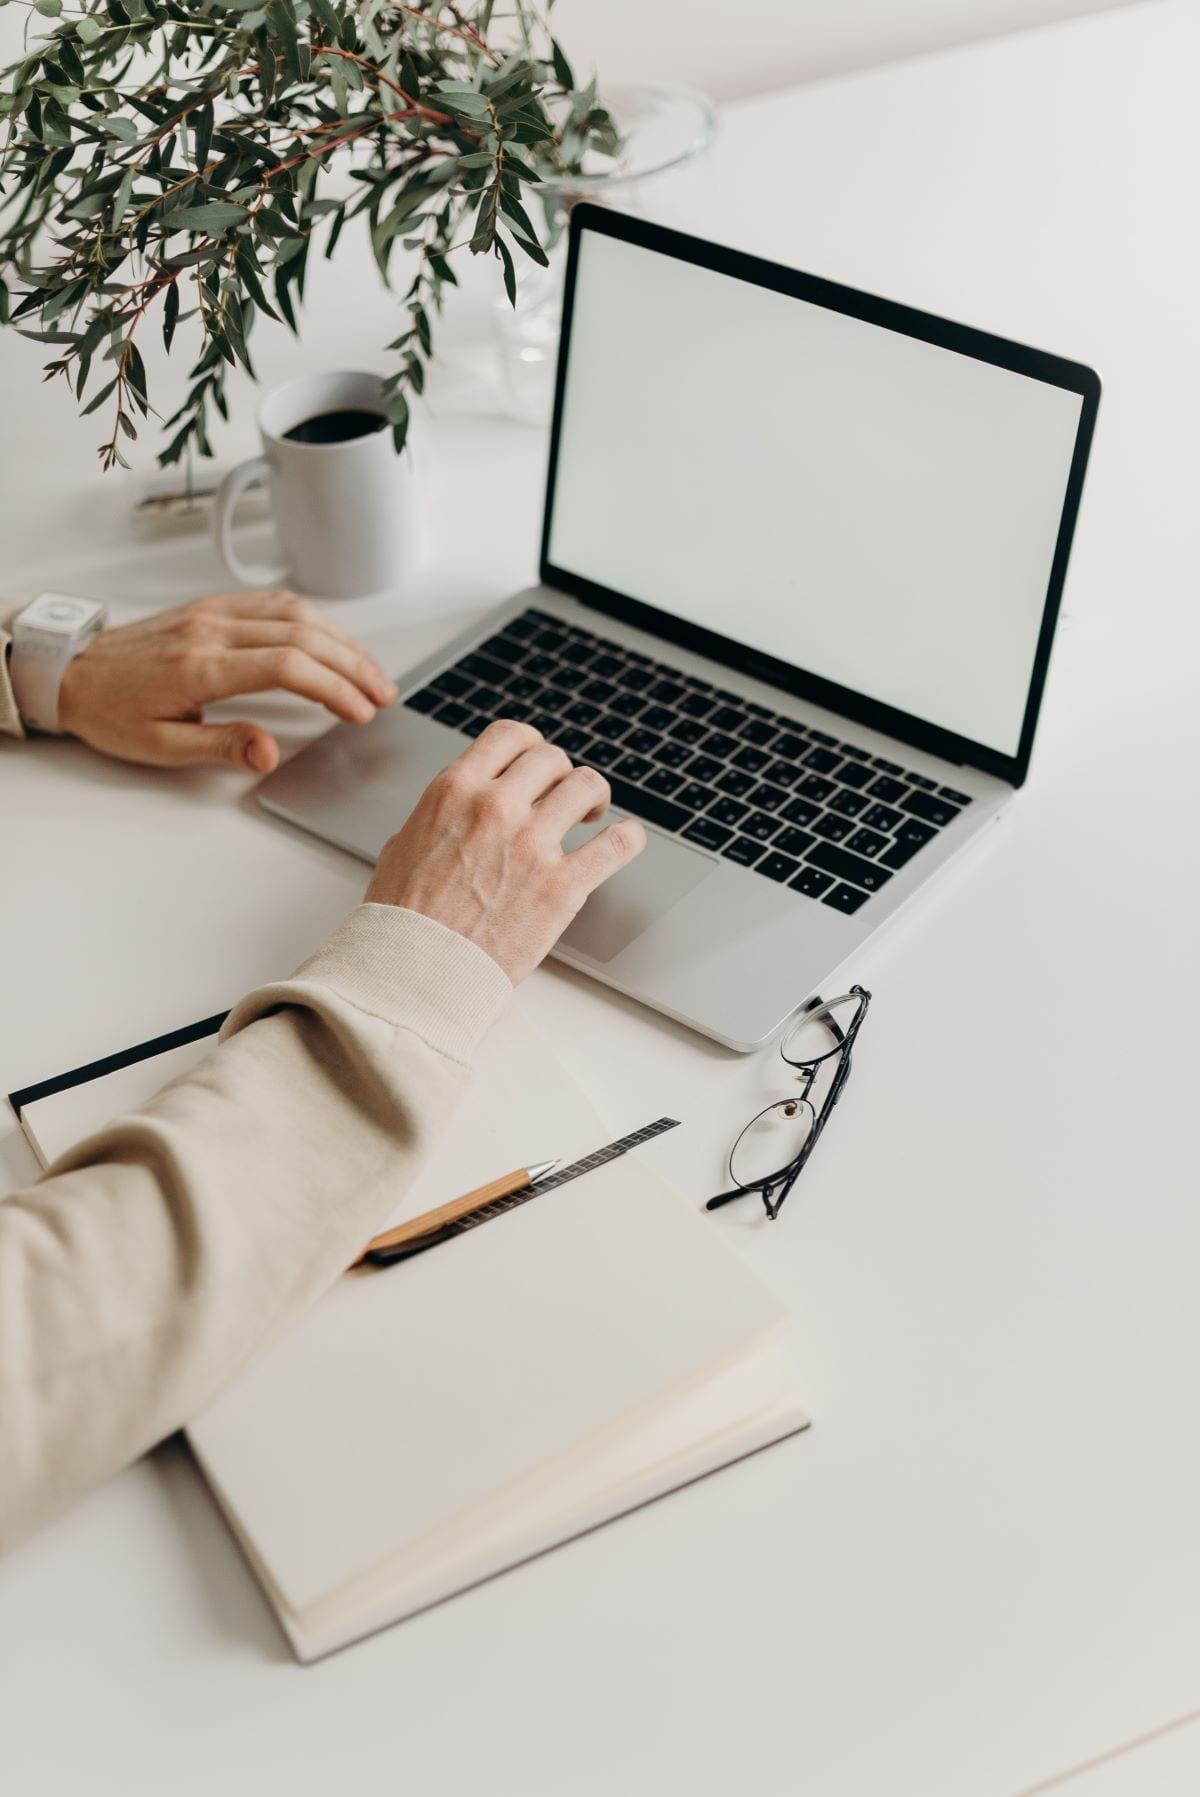 StrategyDriven Managing Your Business Article |Business technology|Ways Technology Can Help Grow Your Business